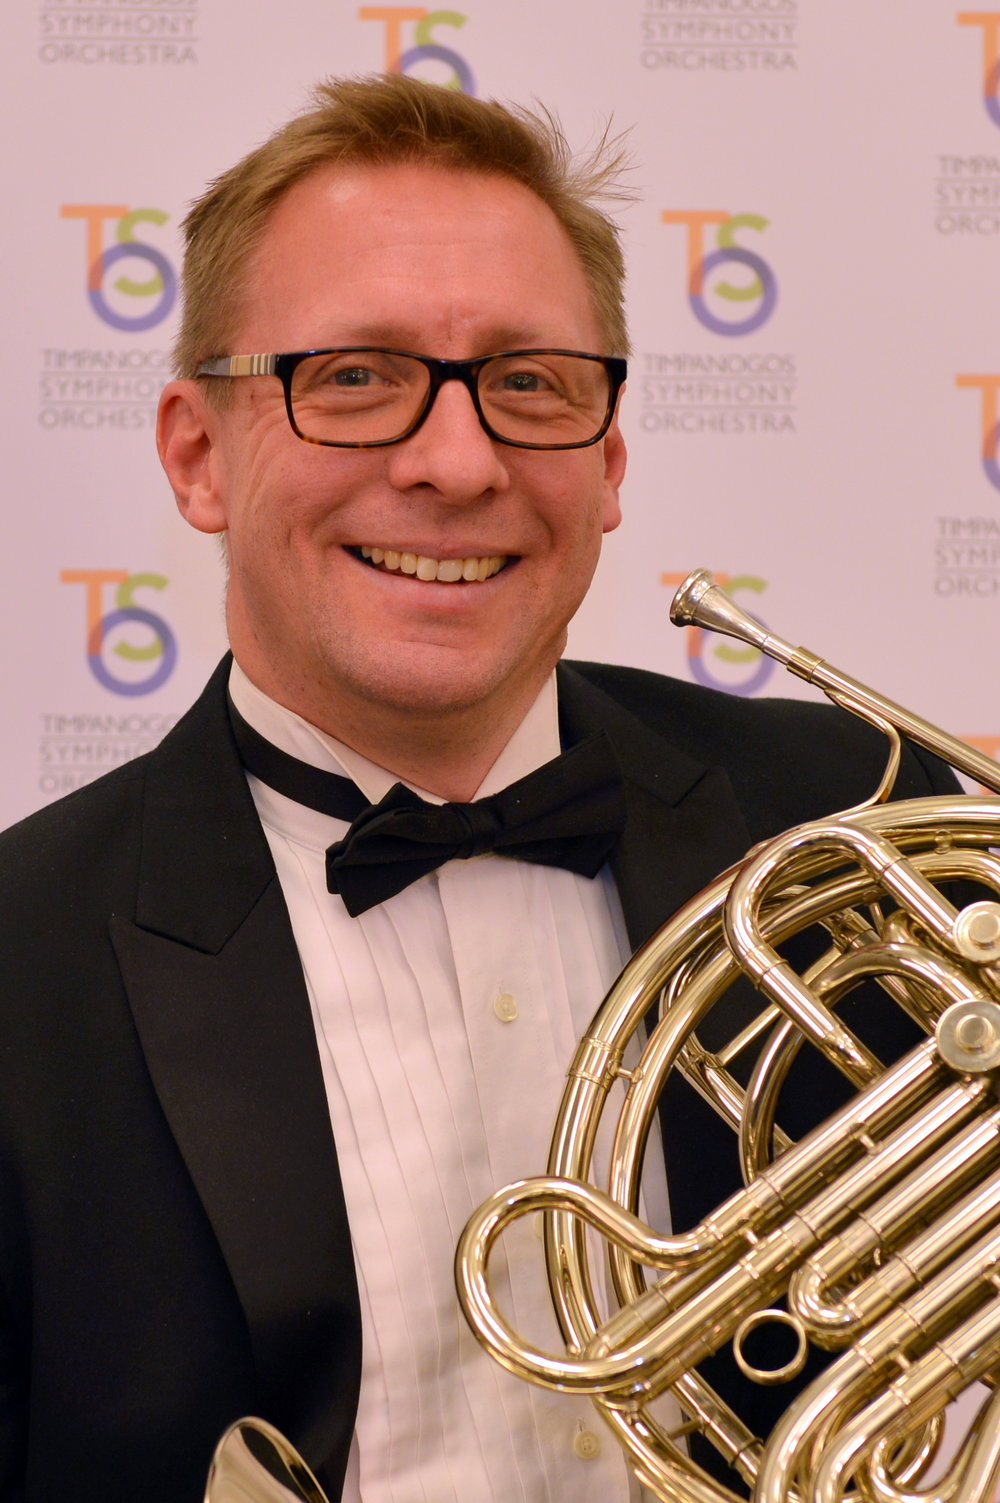 Brad Freestone, Principal French Horn